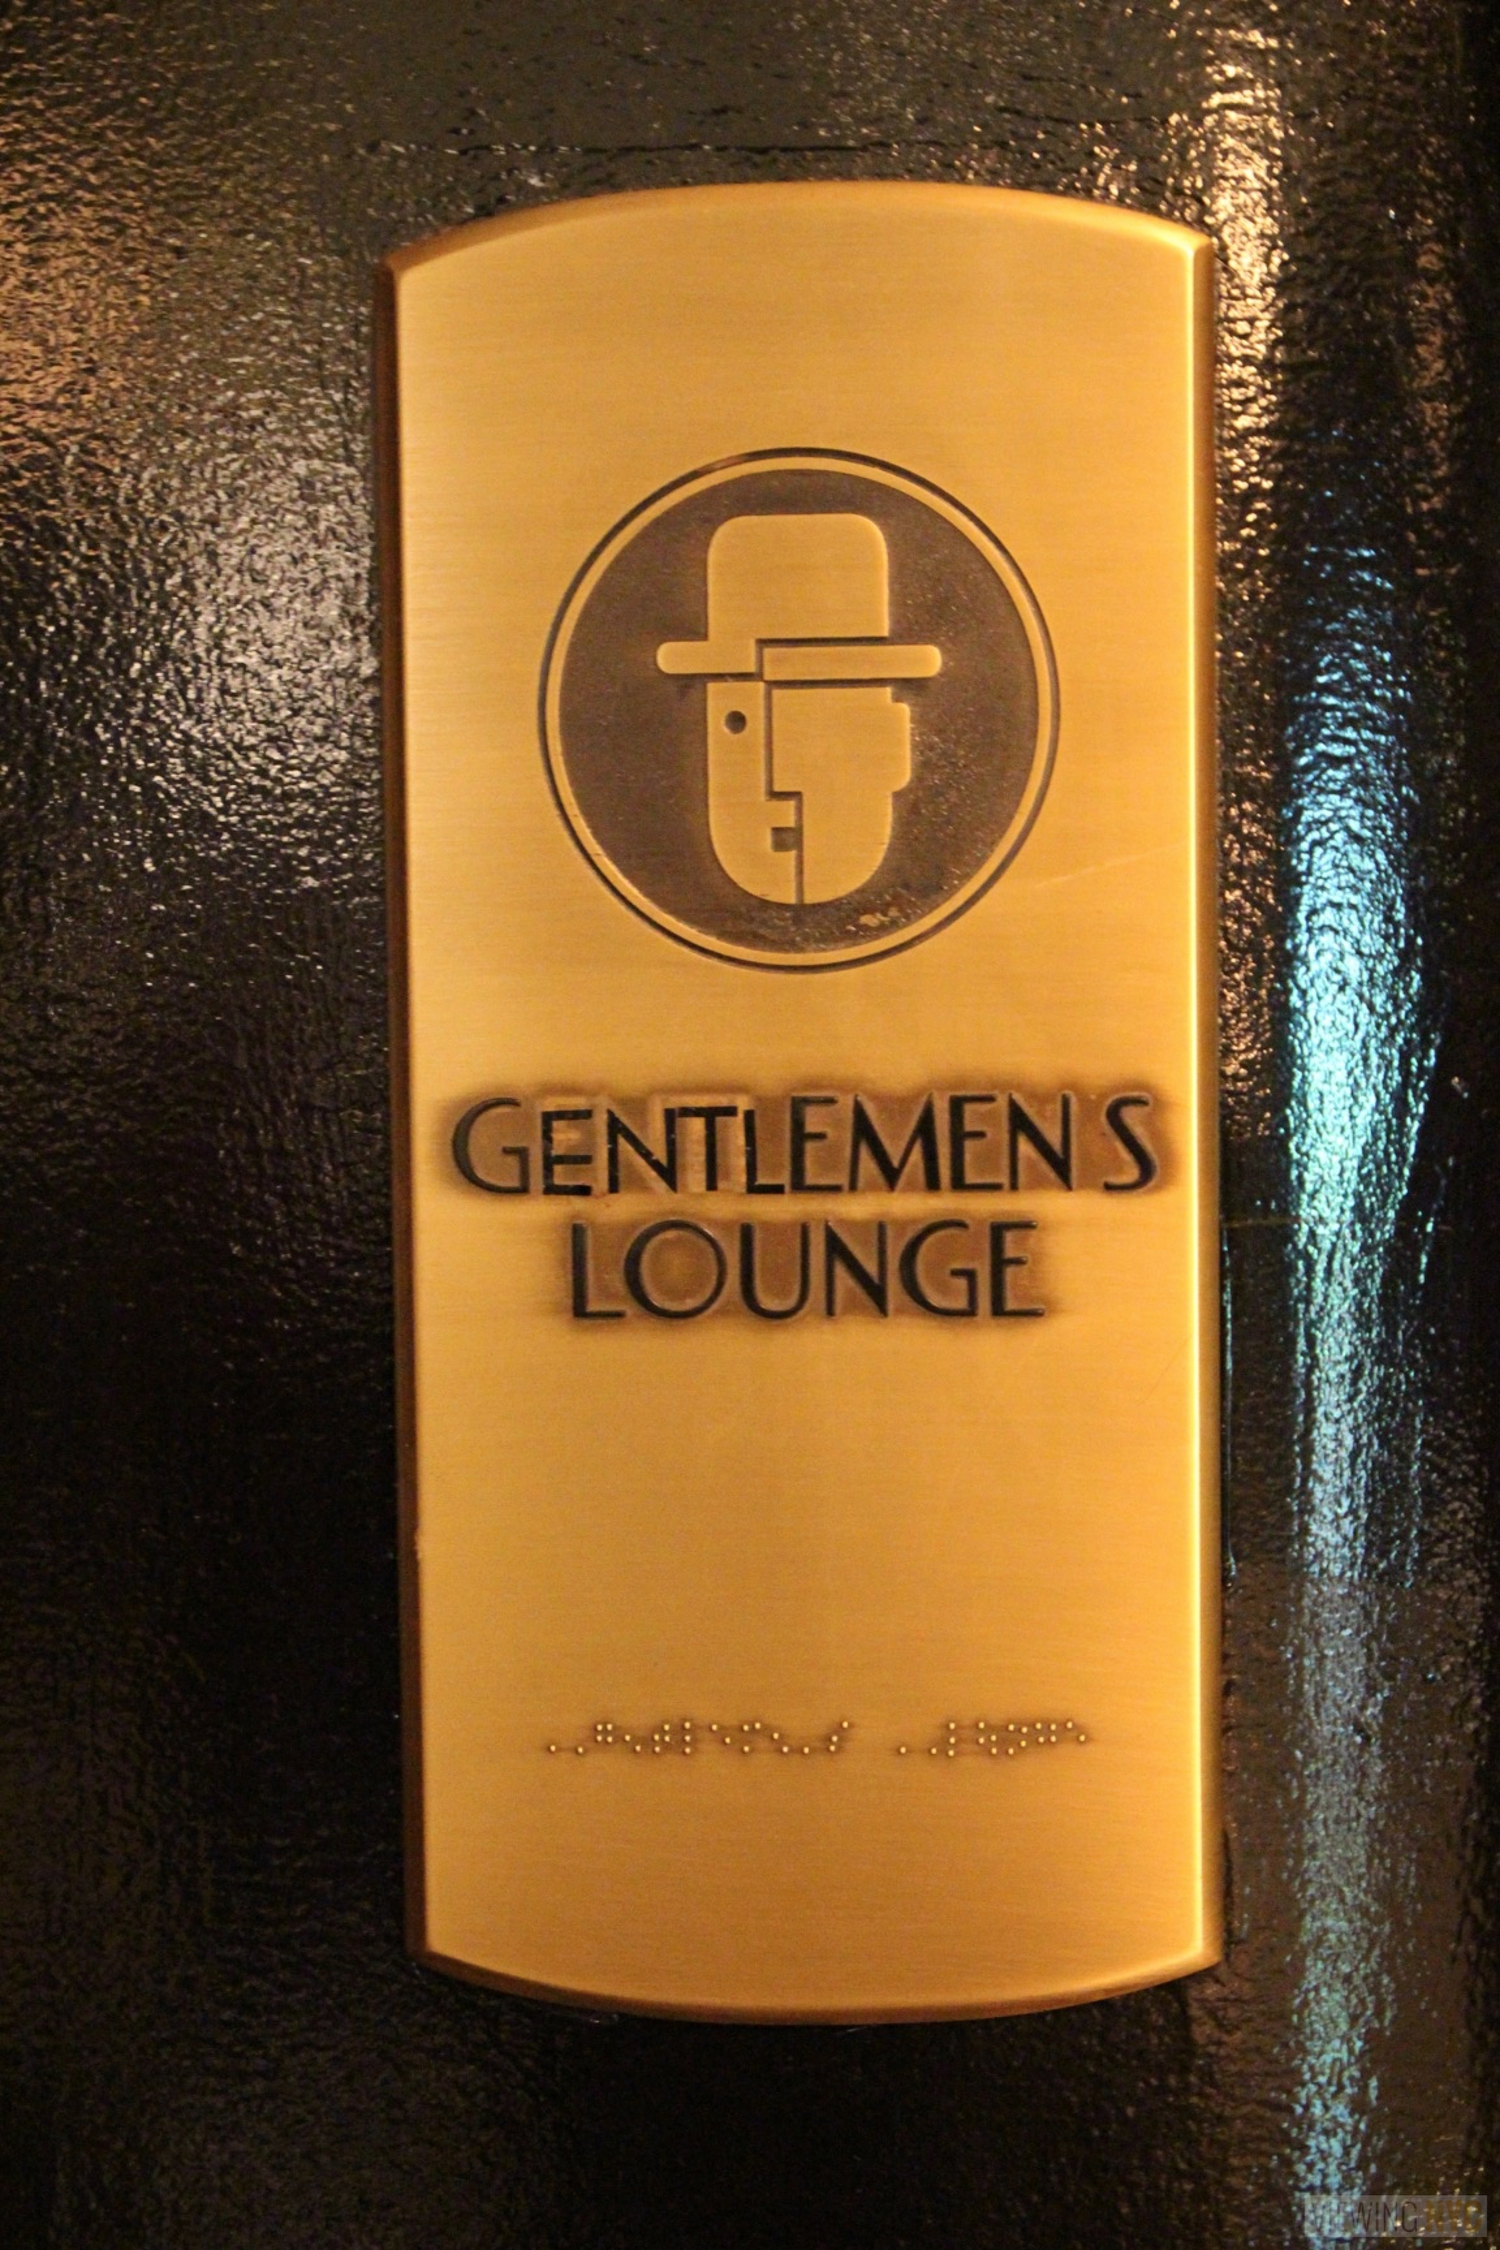 "Gentlemens Lounge Brass Plate | Built in 1932, Radio City Music Hall is a prime example of art deco architectural style that has withstood the test of time. With tons of gold, reflective surfaces and geometric design, walking through the venue is a bit like stepping back in time. Most of the fixtures, furniture and ornamentation are original, and any replacements are exact replicas of how the theater looked 80 years ago.  Read more here: <a href=""https://viewing.nyc/i-braved-a-walkthrough-of-radio-city-music-hall-meant-for-tourists/"" rel=""nofollow"">viewing.nyc/i-braved-a-walkthrough-of-radio-city-music-ha...</a>"